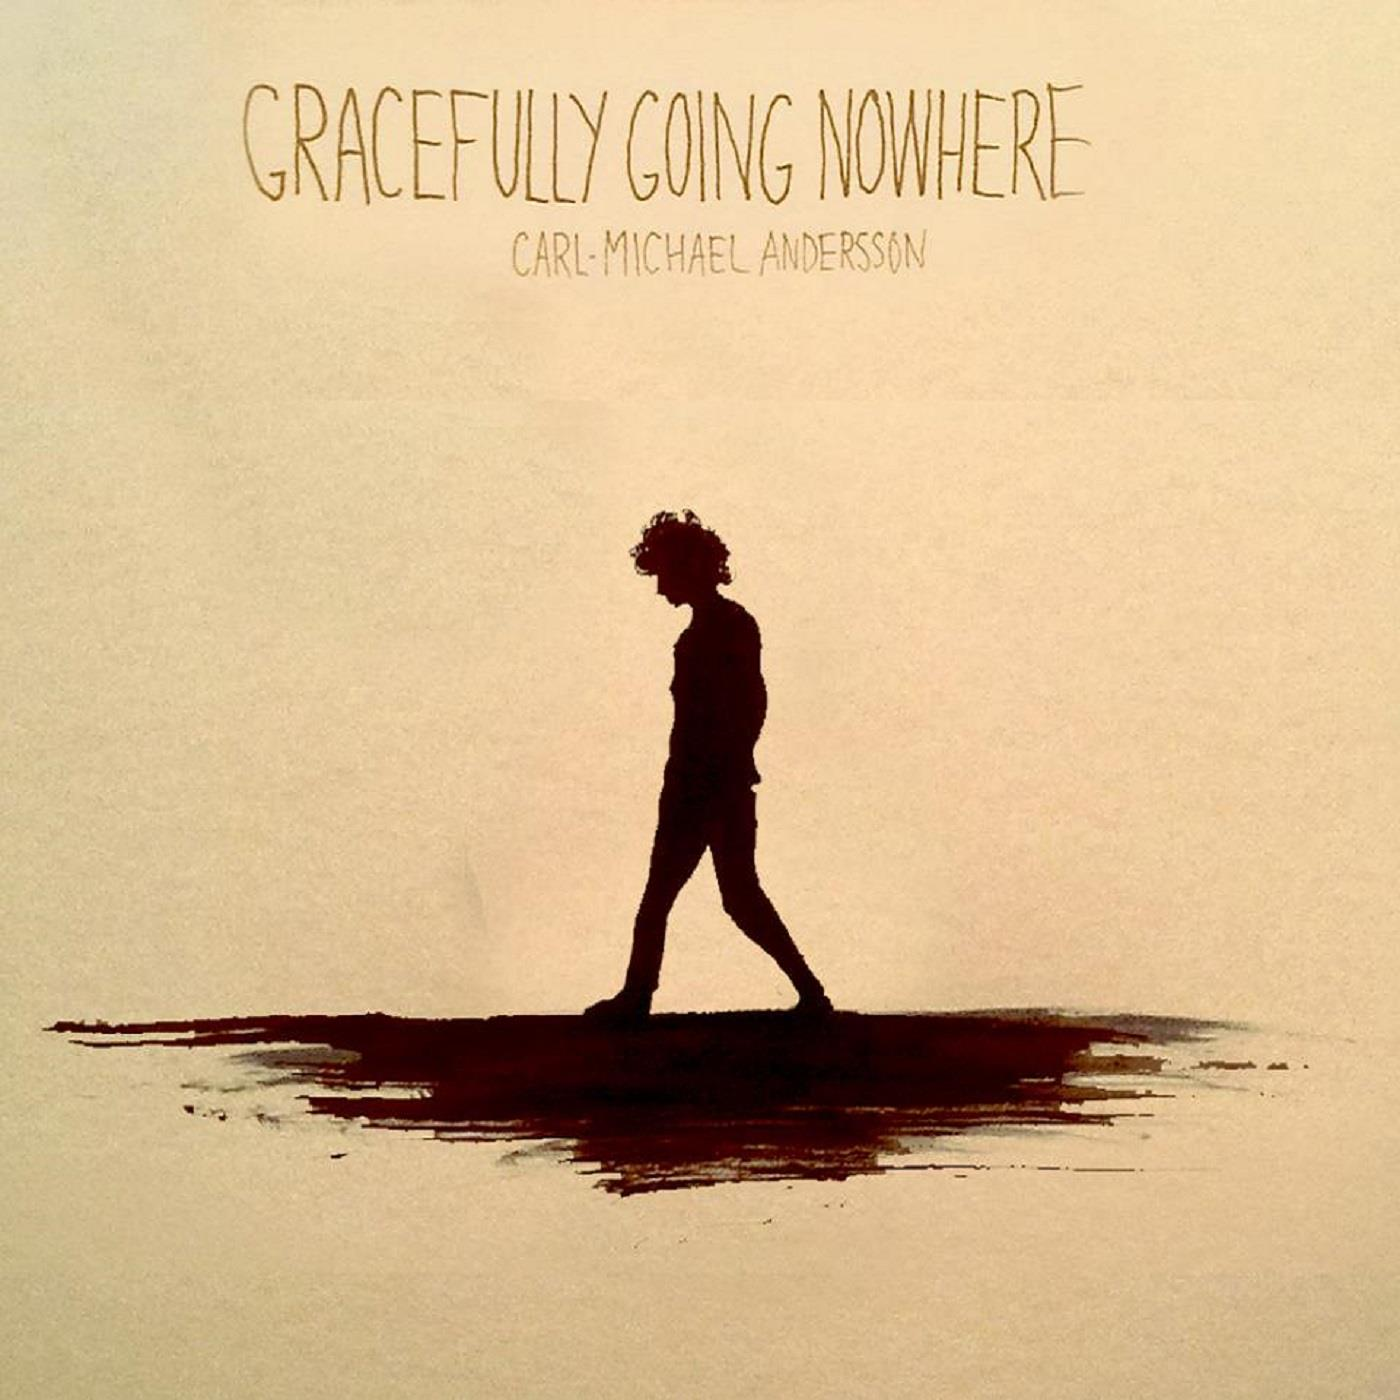 Gracefully Going Nowhere - Single